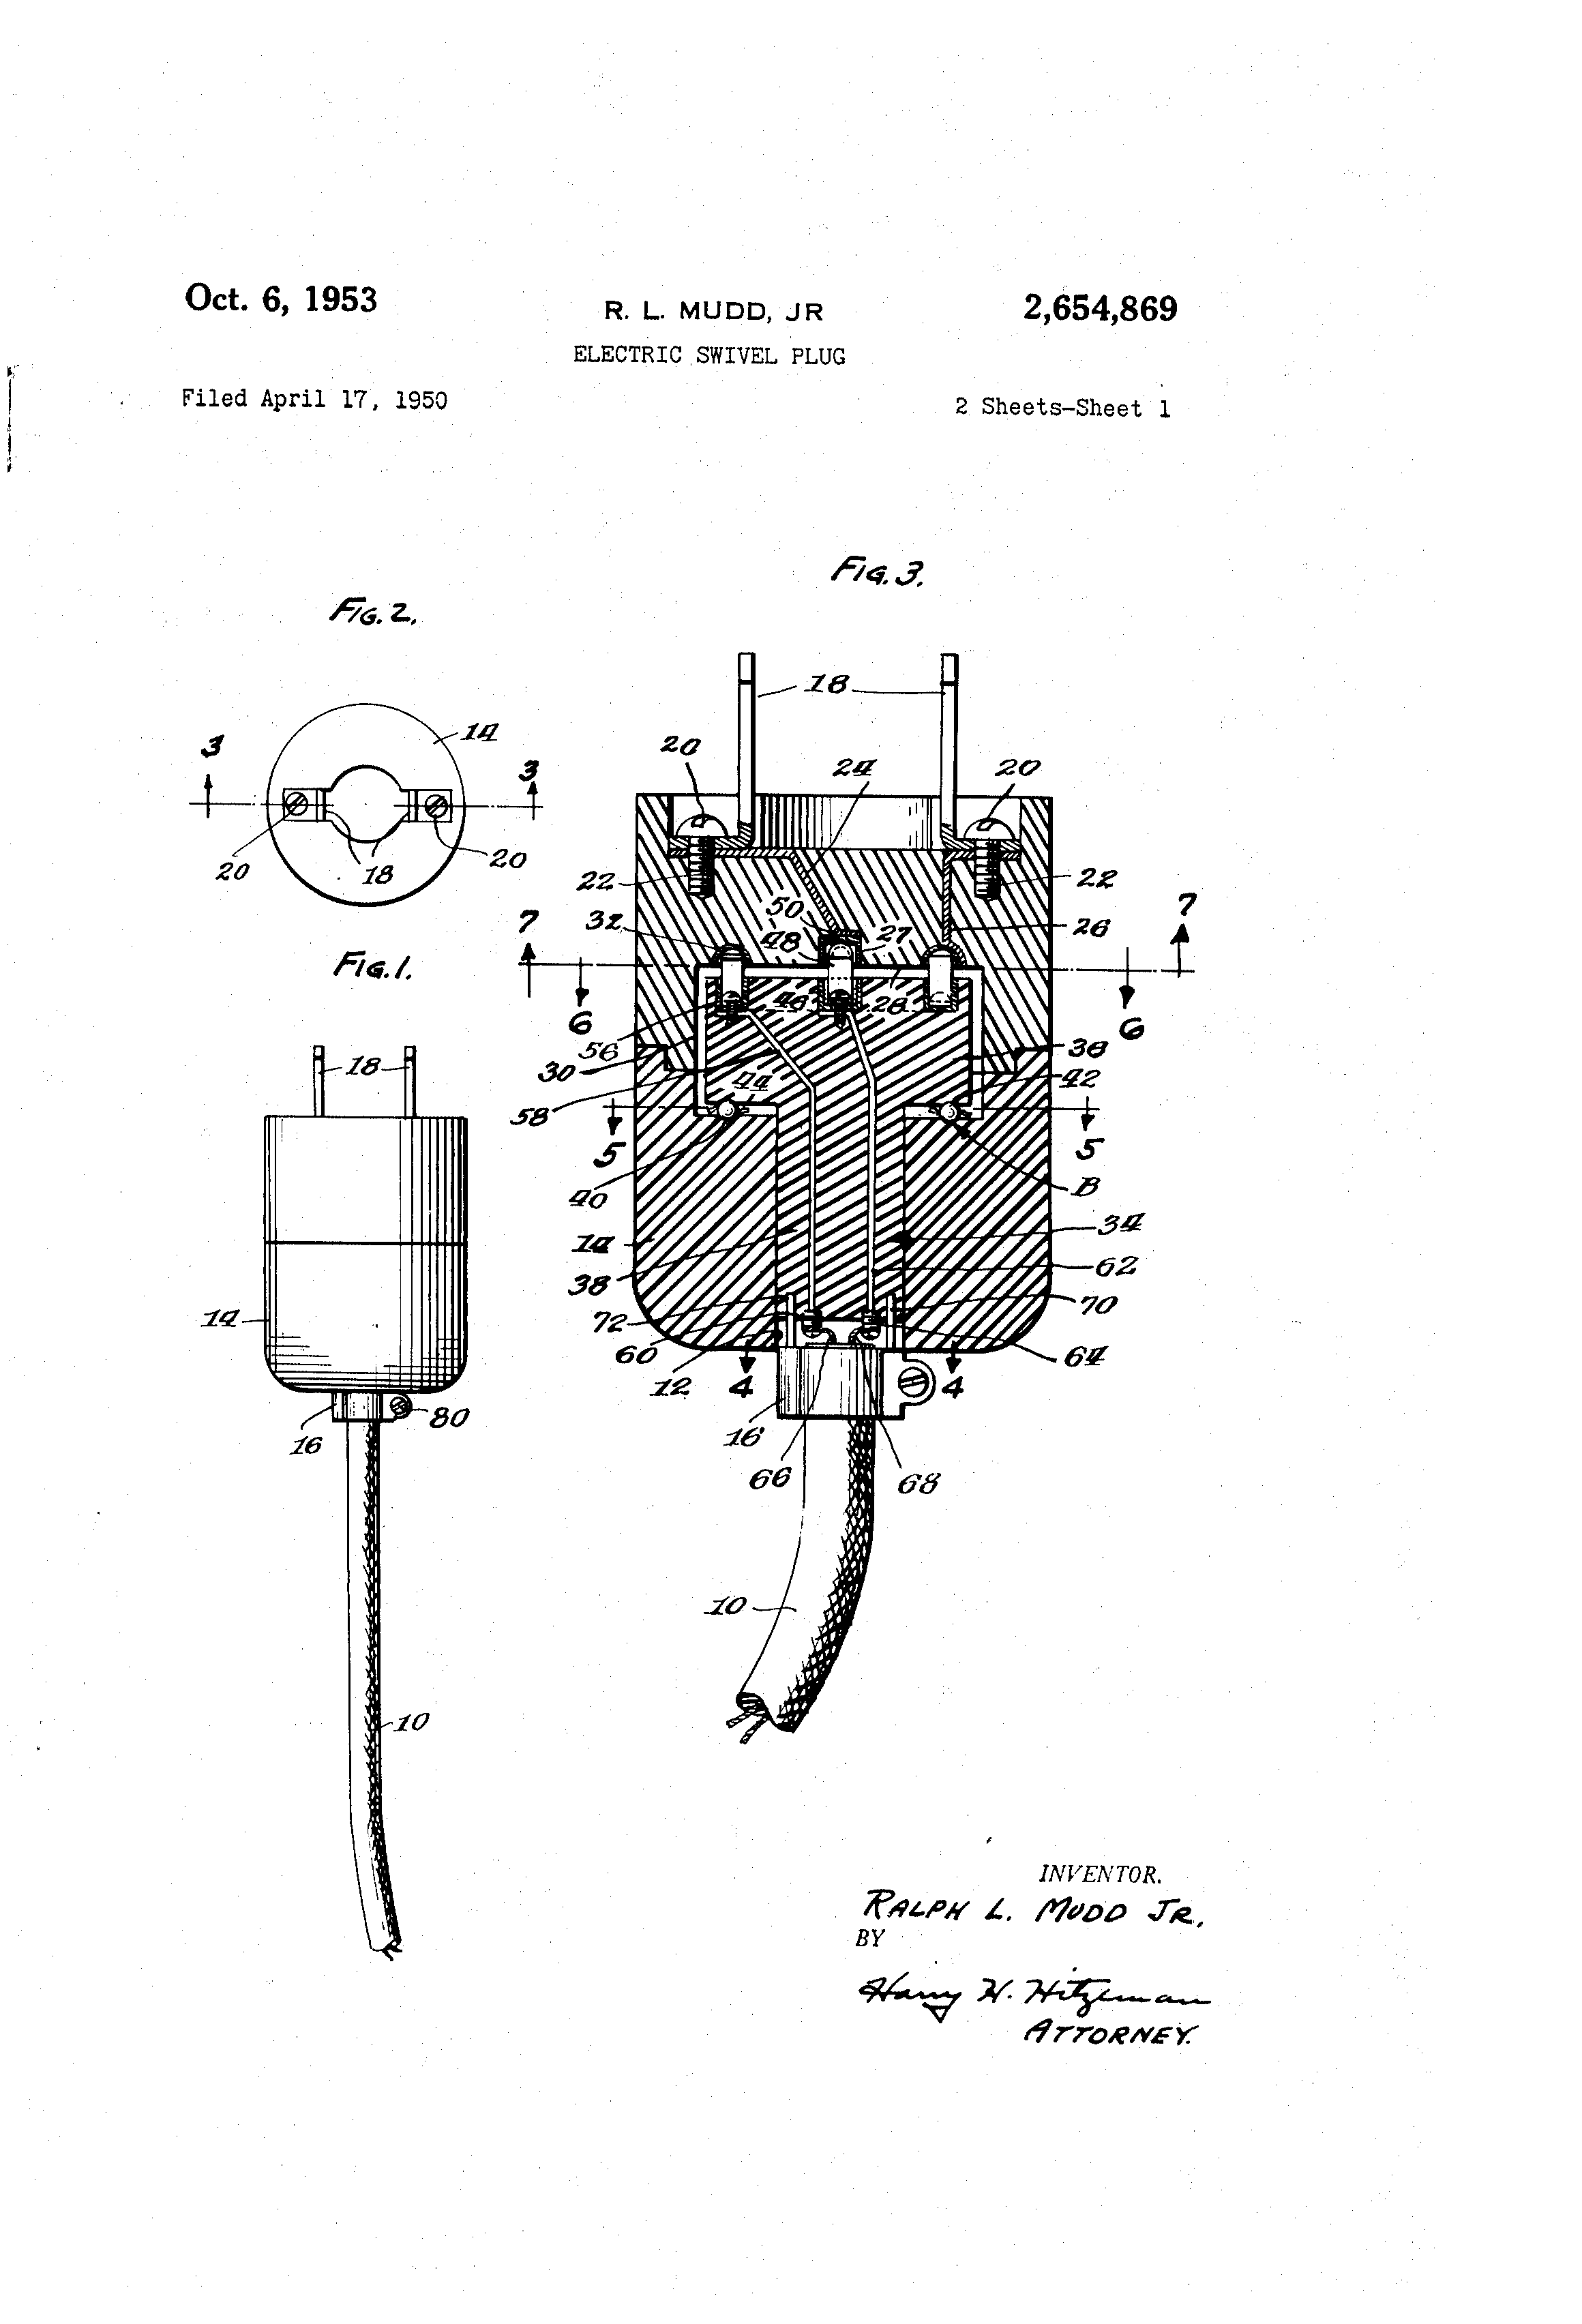 Pivoting Face Receptacle Google Patents On Wiring In Outlets Parallel Or Series Patent Us2654869 Electric Swivel Plug